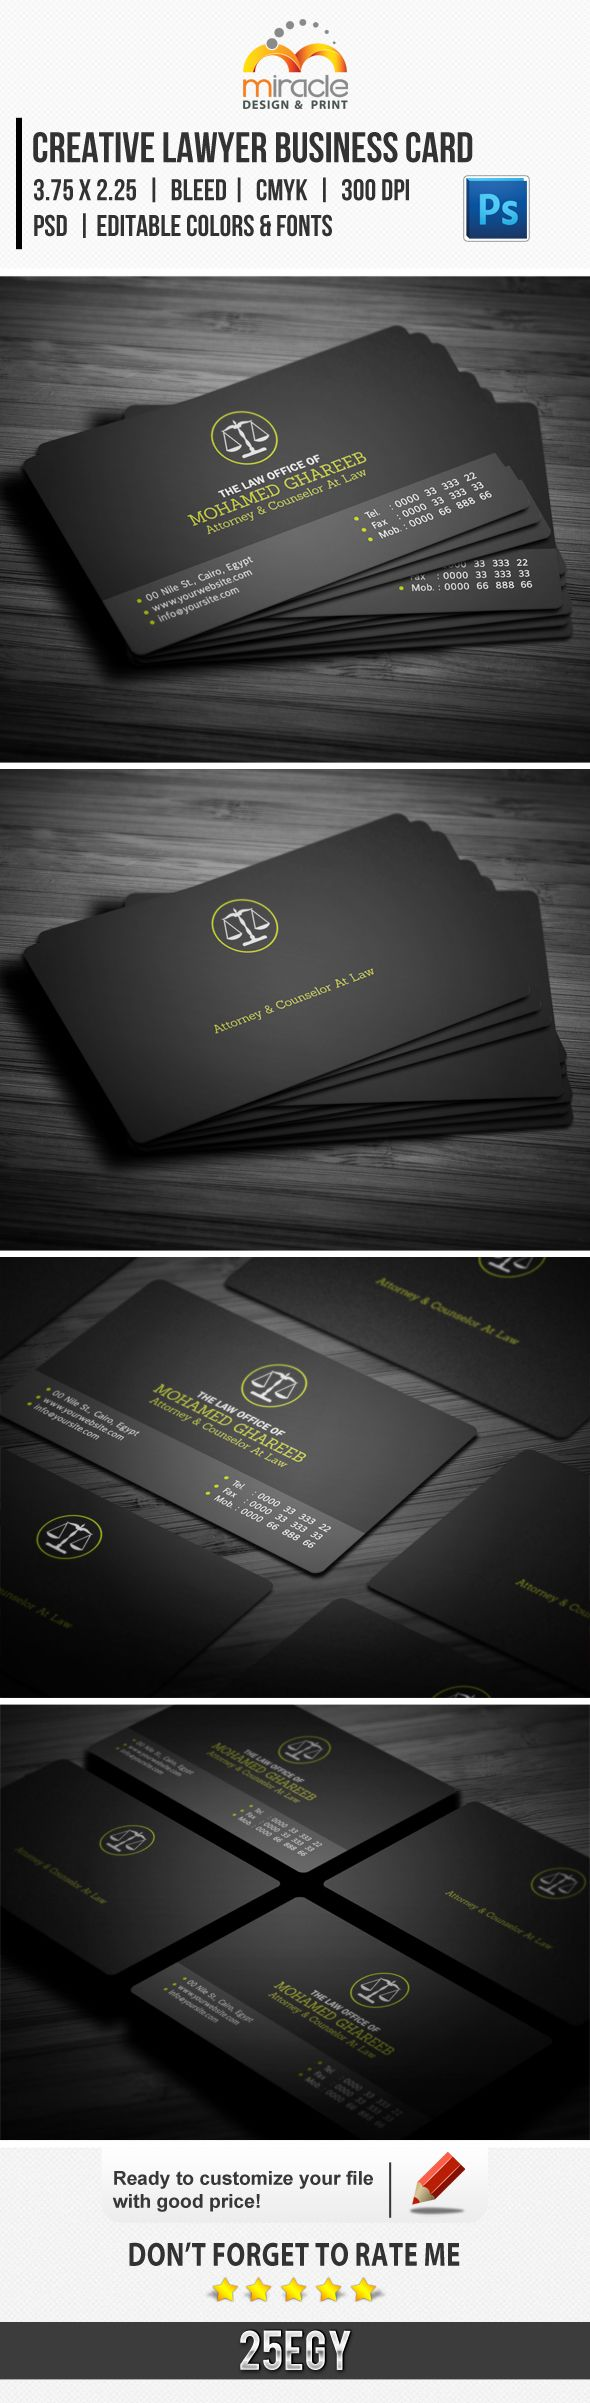 Best 25+ Lawyer business card ideas on Pinterest | Classy style ...